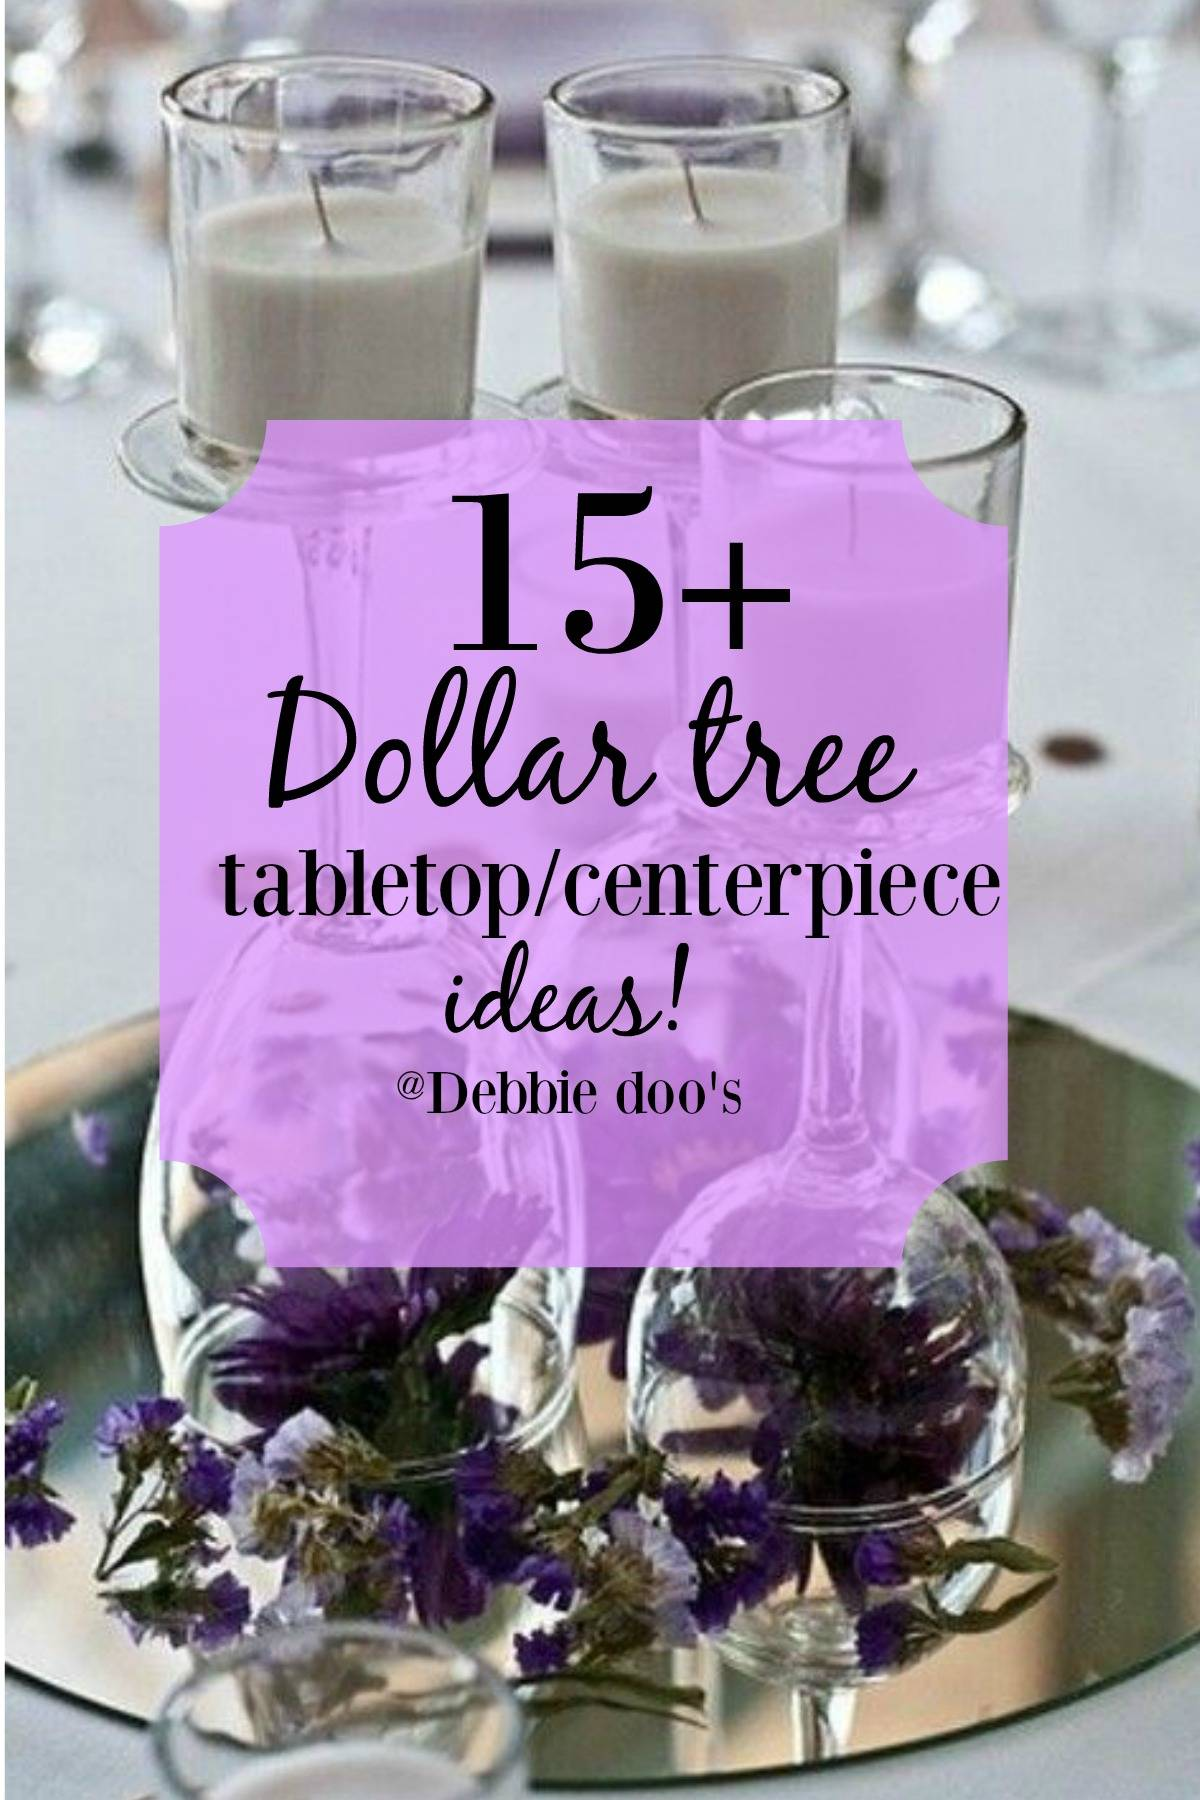 15 Dollar Tree Tabletop Ideas